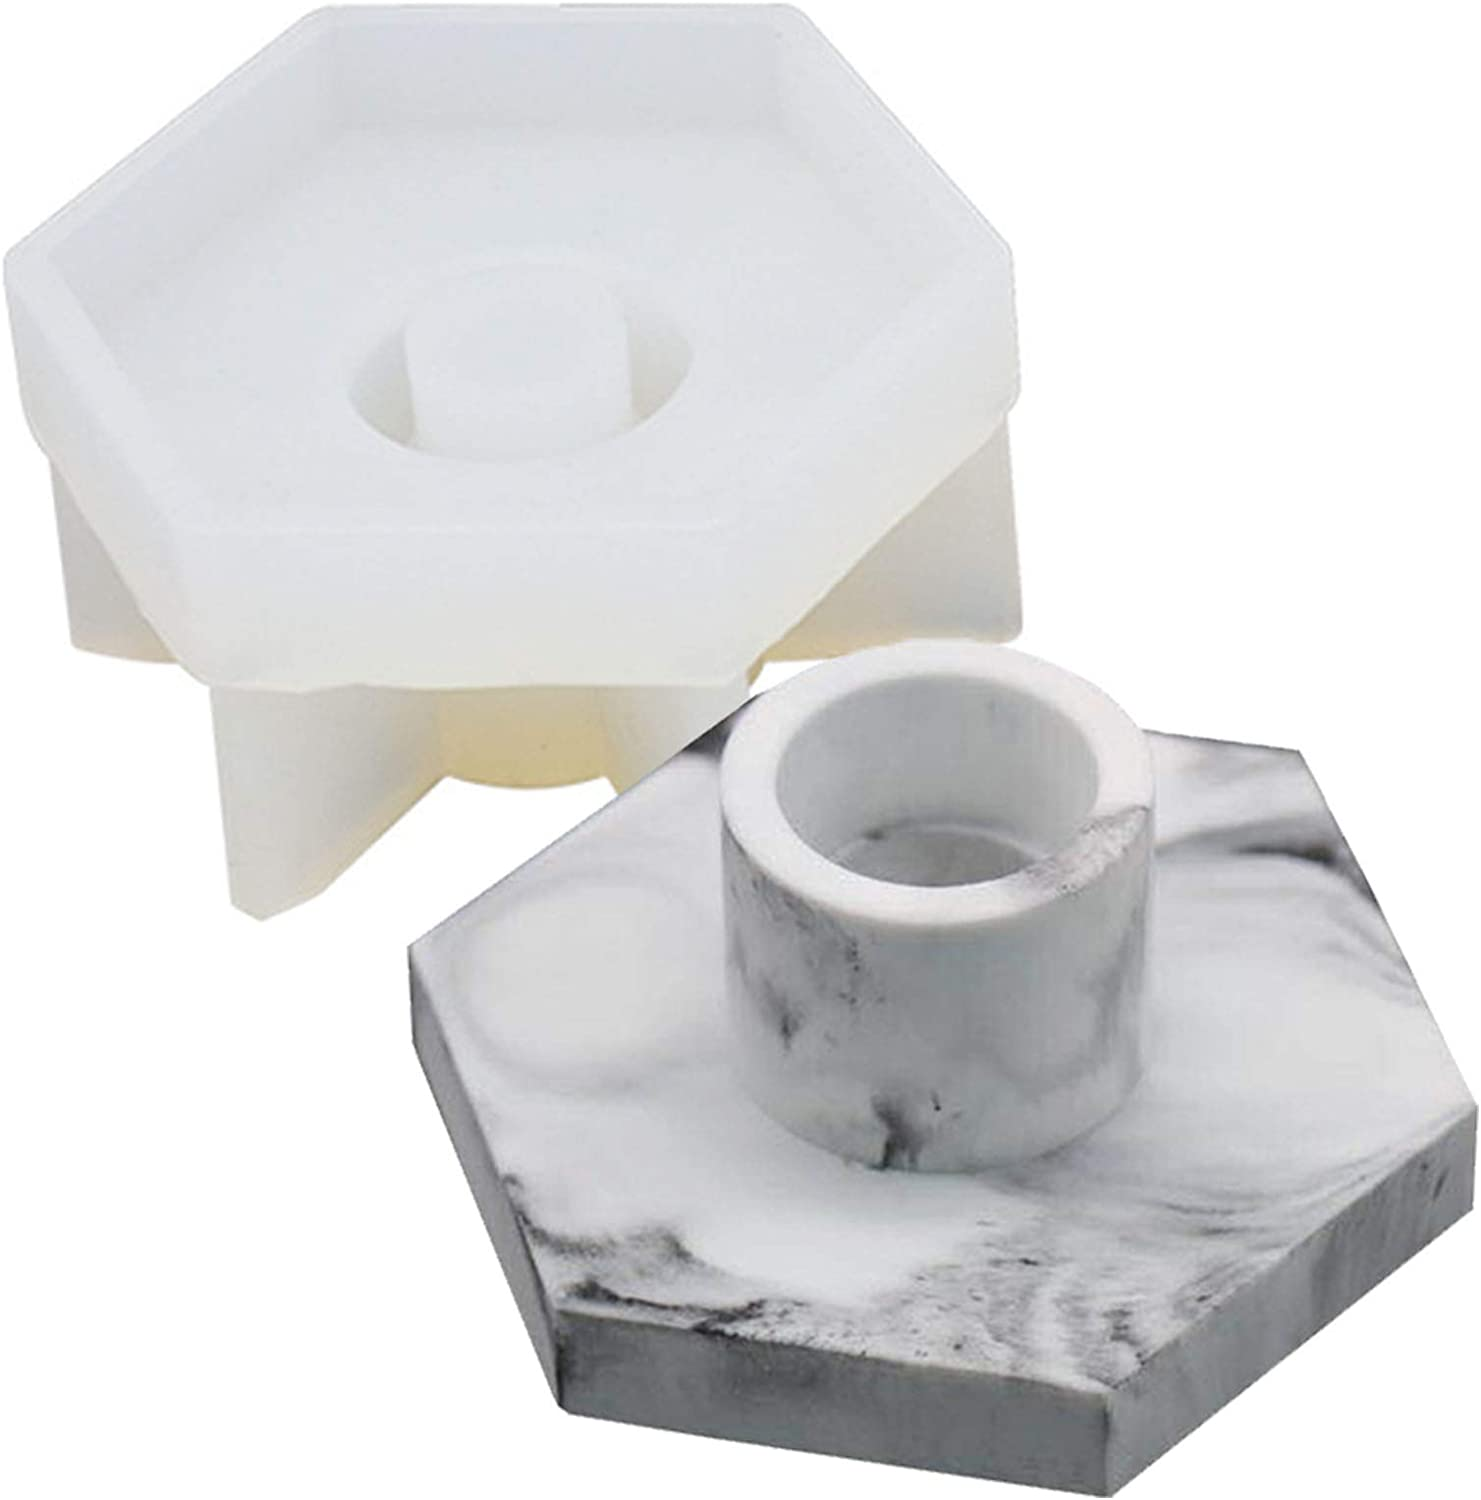 KCH Very popular lowest price Silicone Mold Candlestick Candle Hexagonal Mould Marble Base